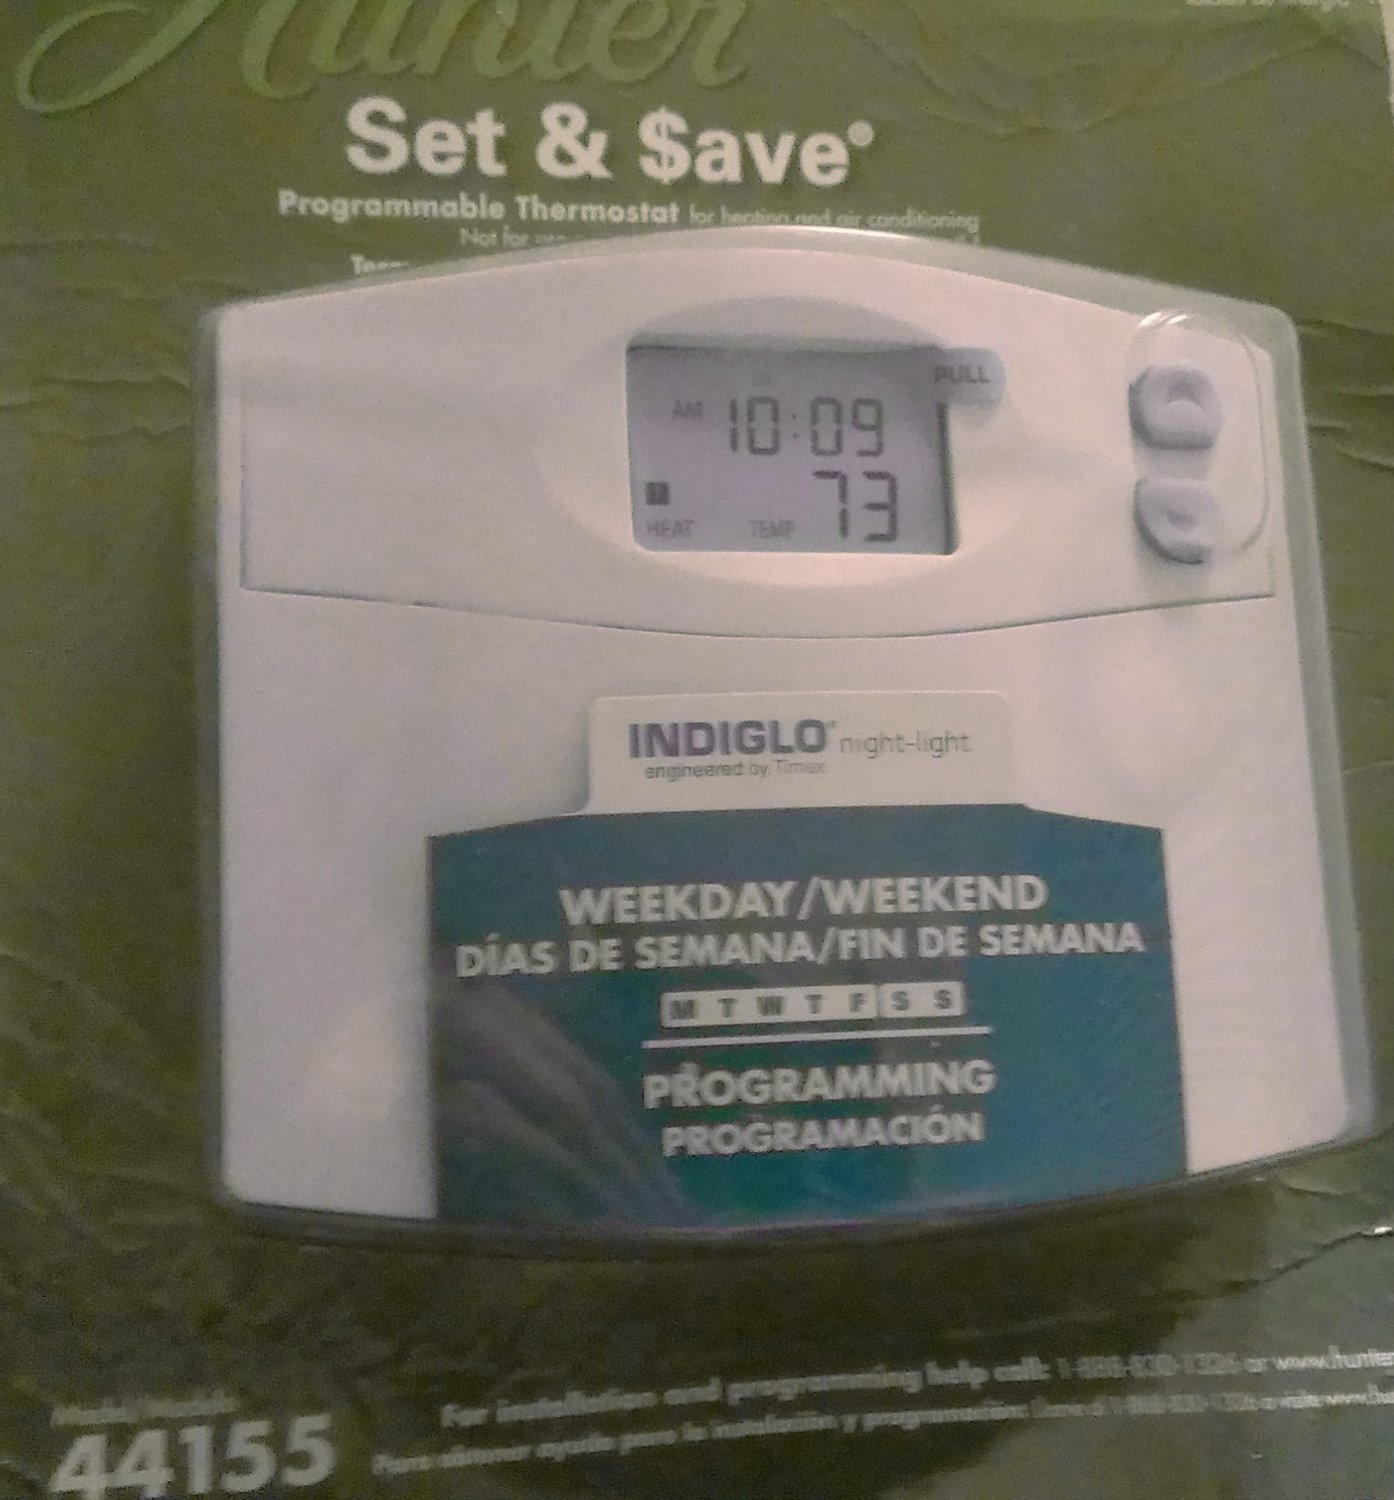 Hunter 44155 Programmable Digital Thermostat with Indiglo - Programmable  Household Thermostats - Amazon.com